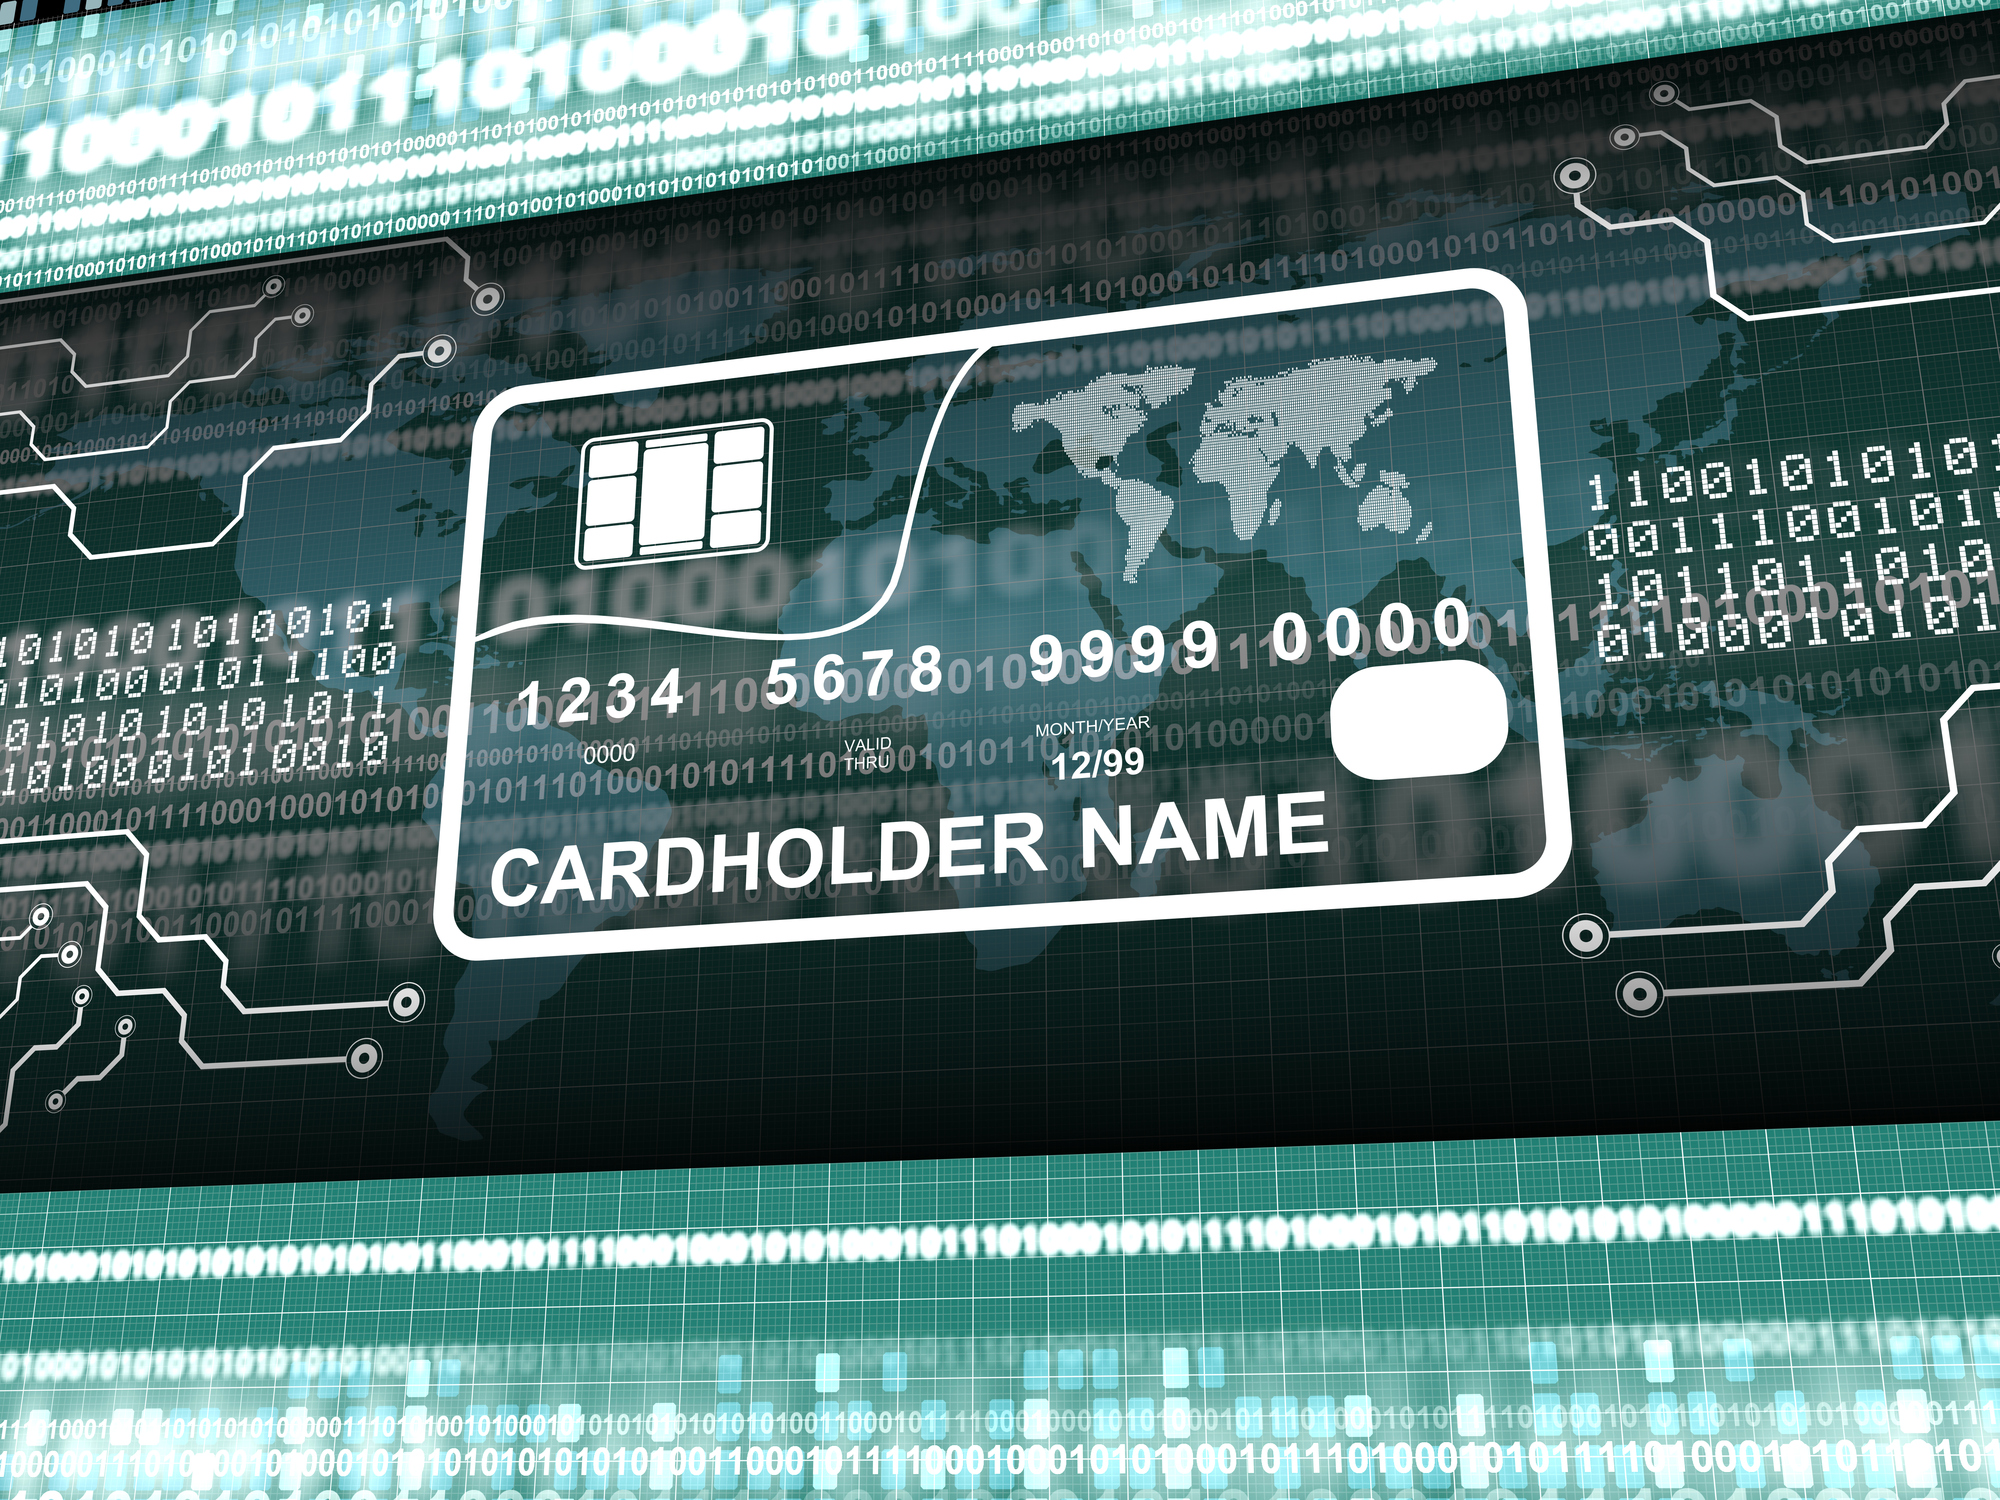 Penetration Testing assesses the controls used to protect the Cardholder Data Environment (CDE) for PCI DSS